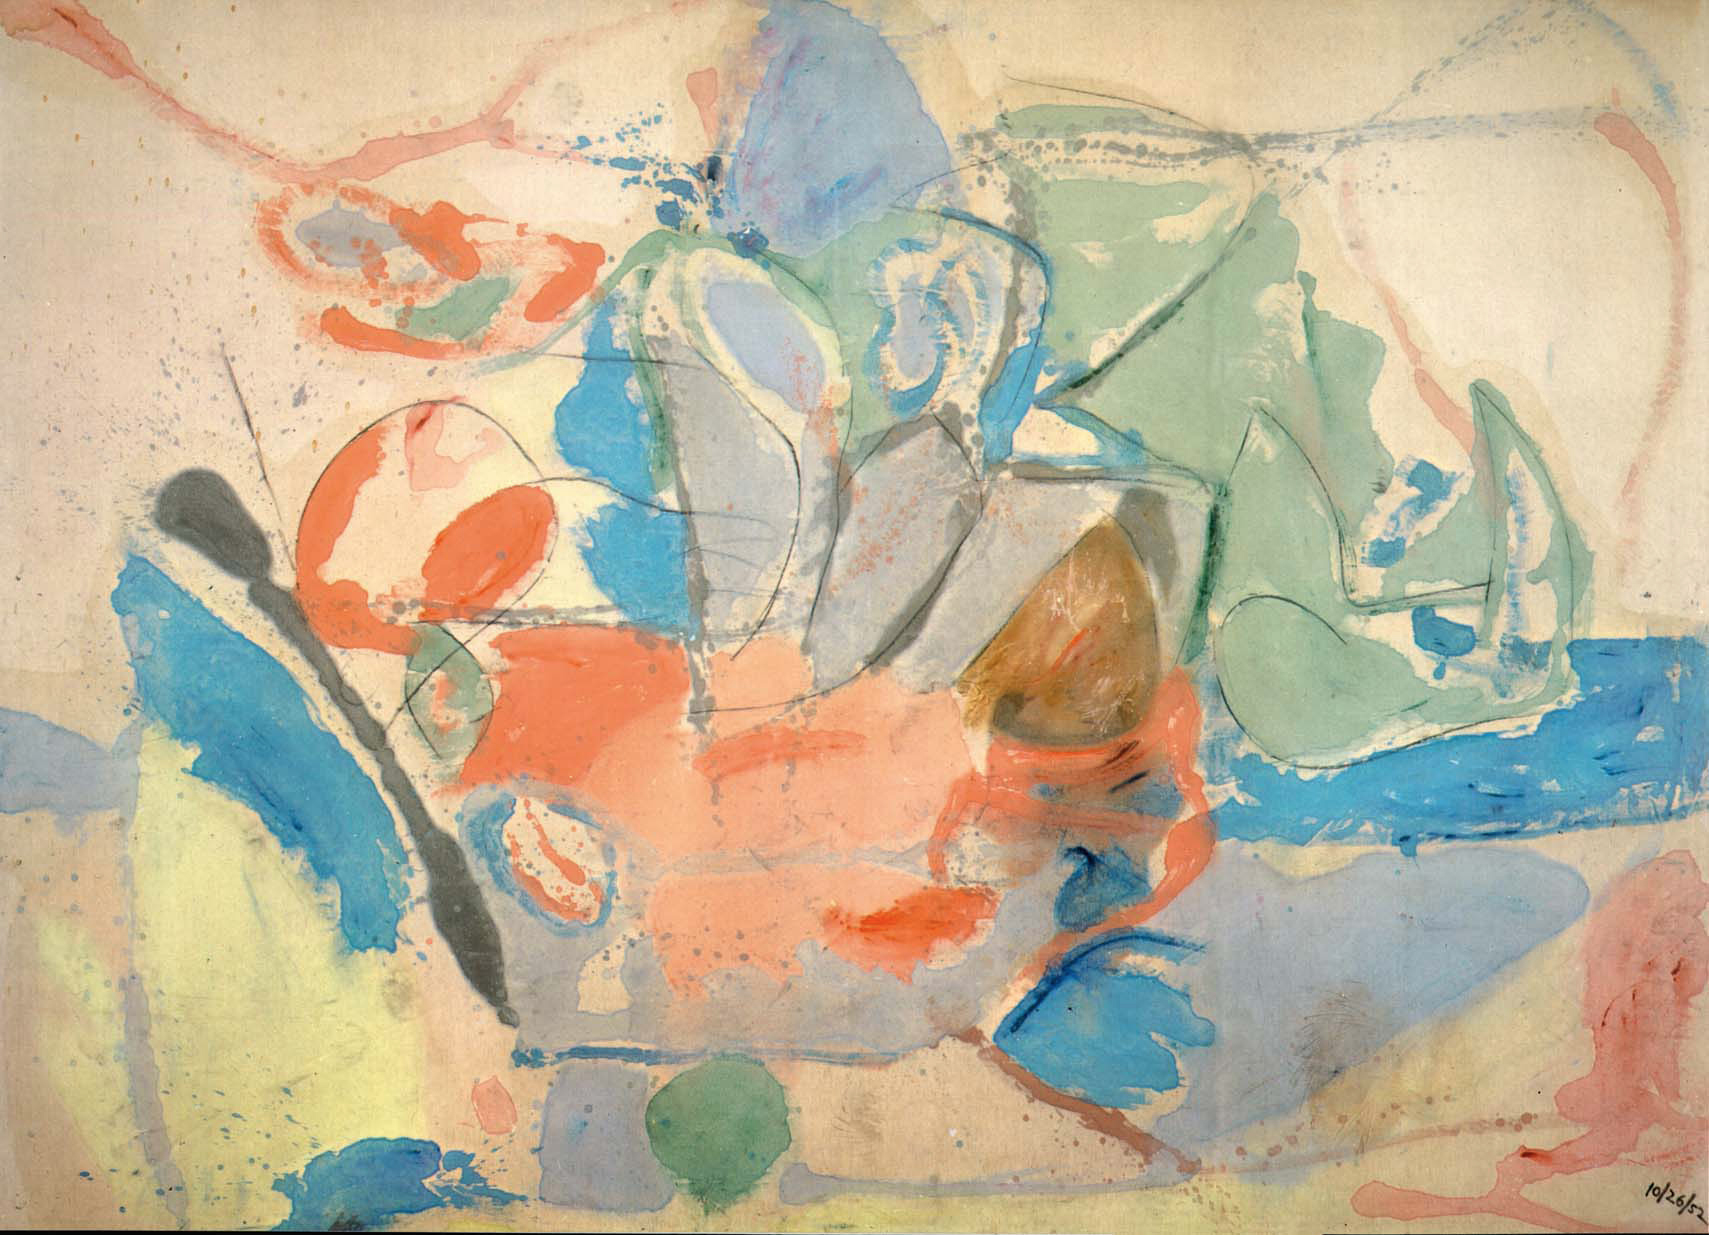 Mountains and Sea (1952) by Helen Frankenthaler. As reproduced in Art in Time